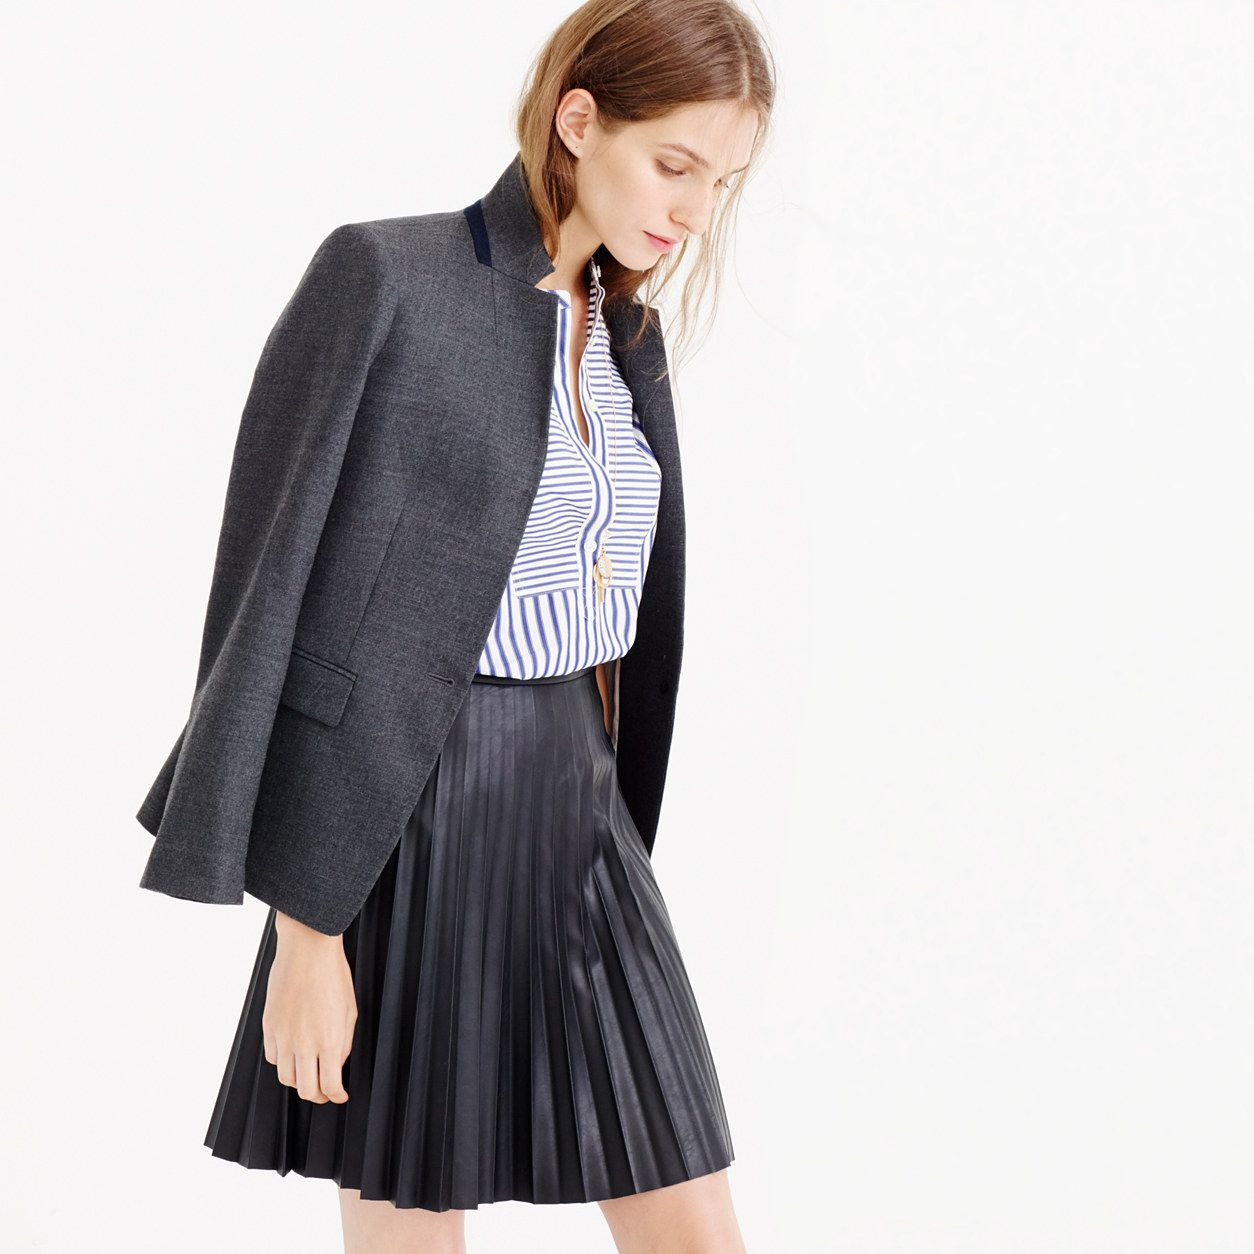 Tall faux leather pleated mini skirt : new arrivals | J.Crew ...